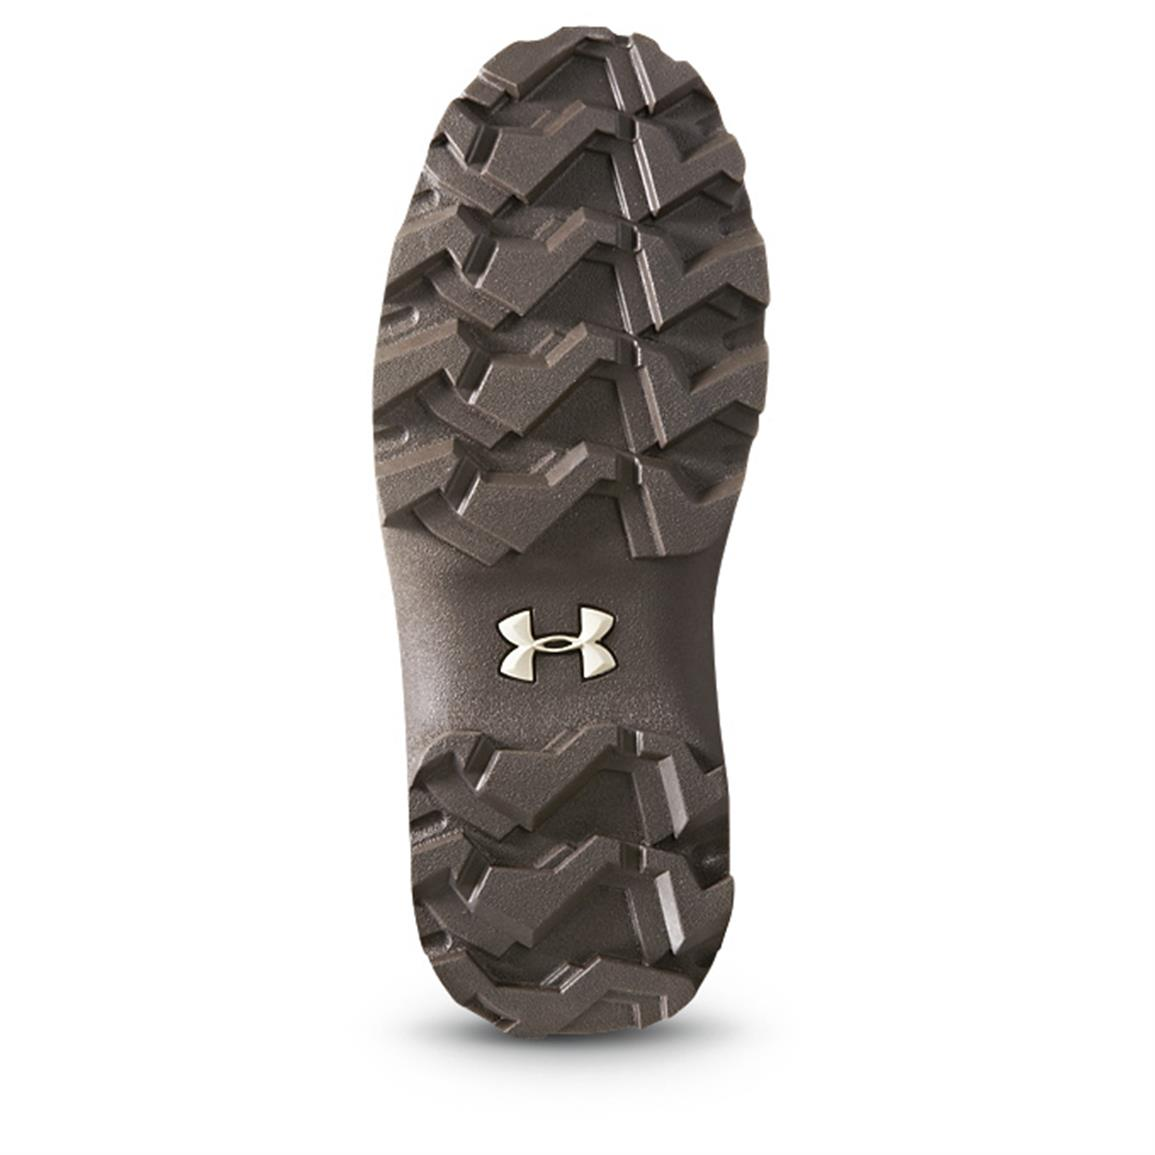 Rugged rubber outsole